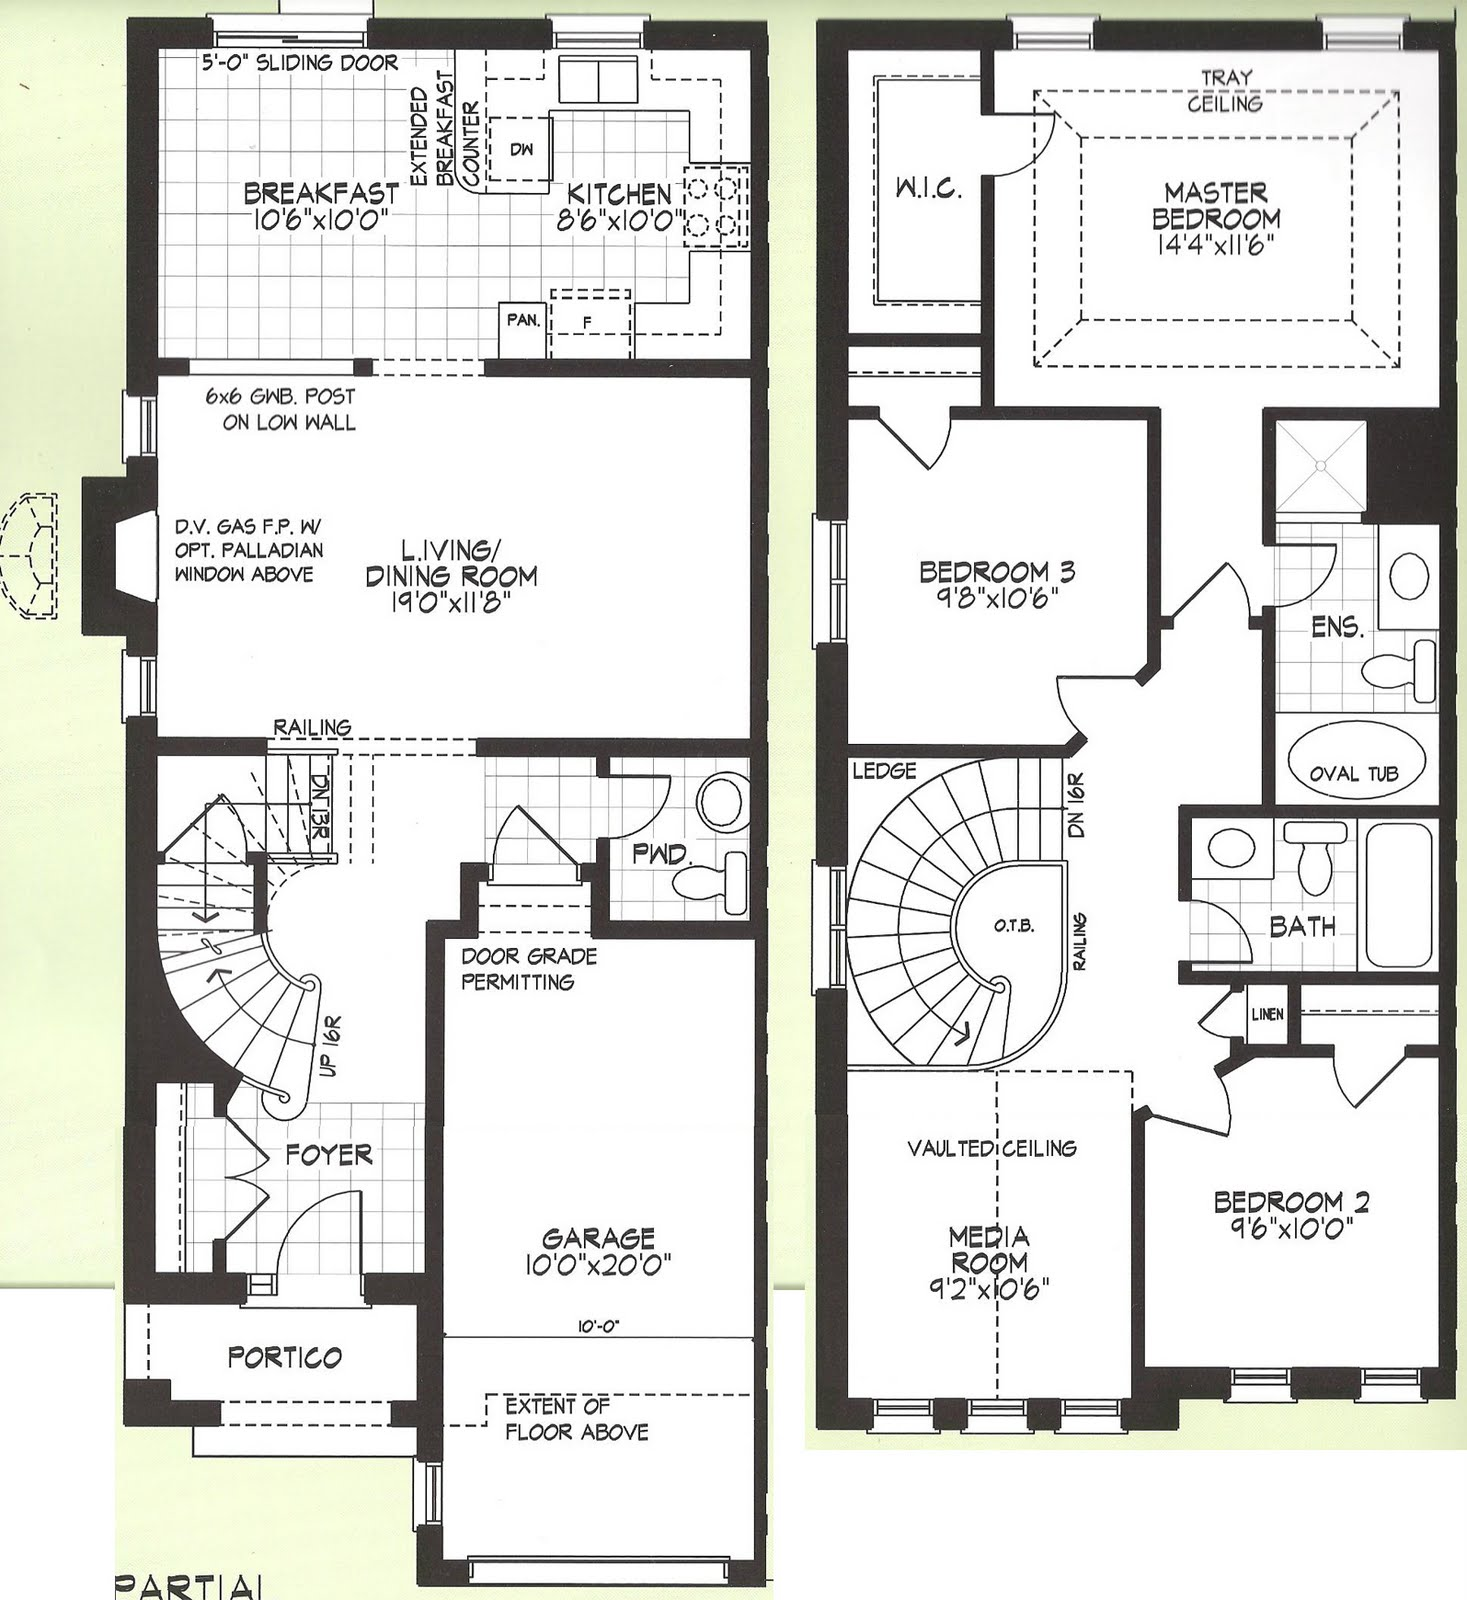 Eames house floor plan dimensions interior decorating ideas for House plans with dimensions